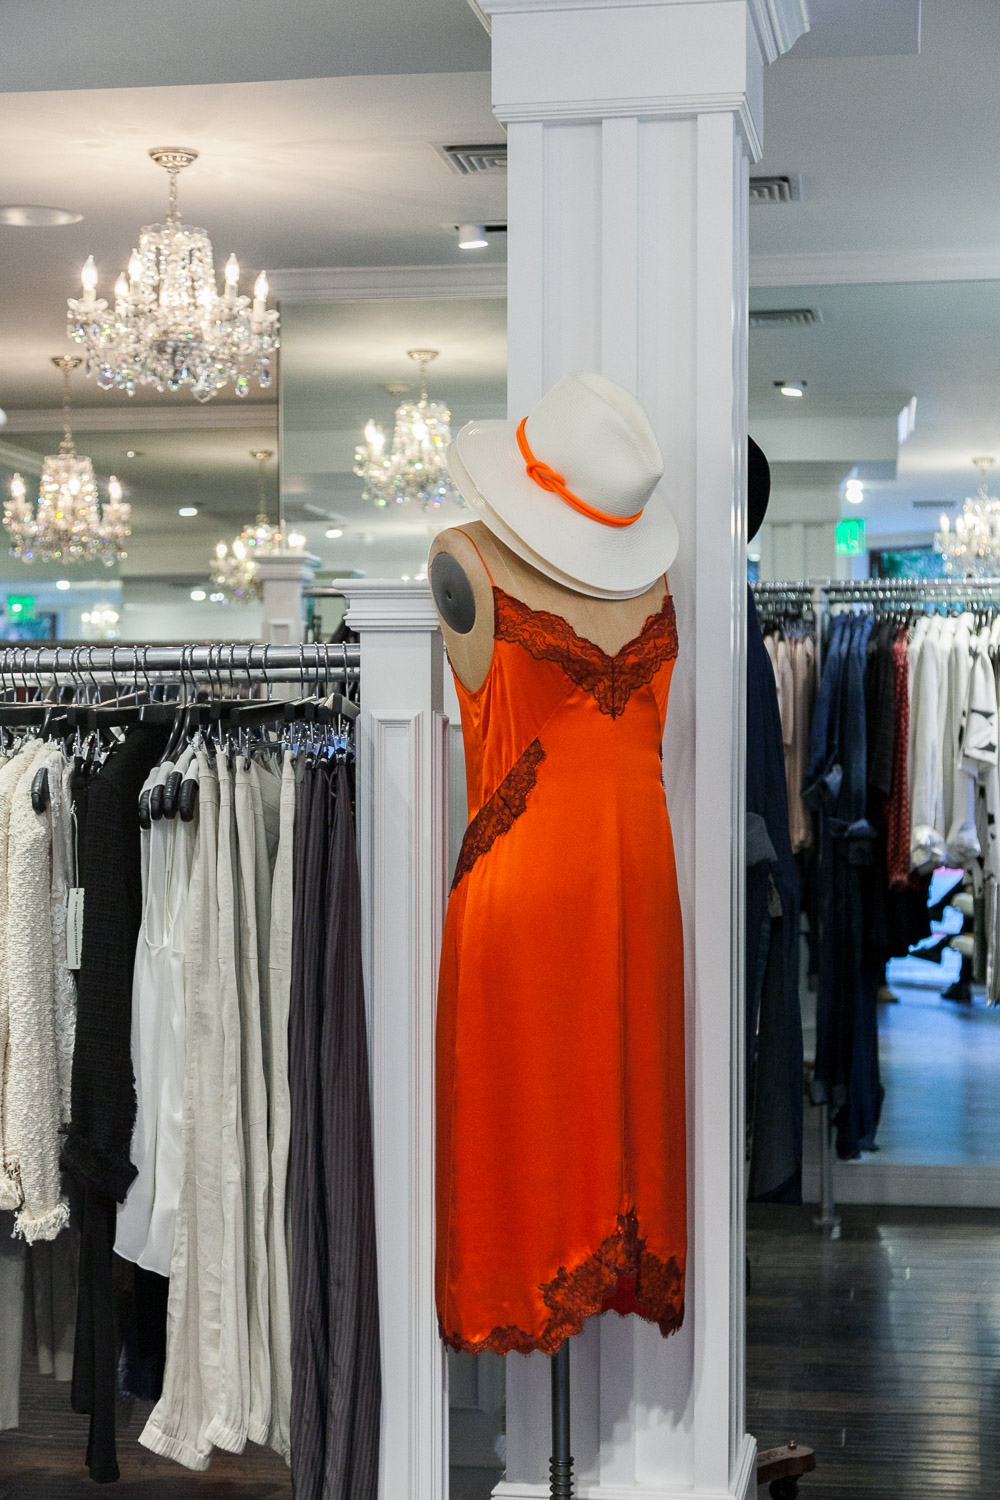 An orange lingerie dress with hat at GBG, a stylish Carmel, CA boutique.